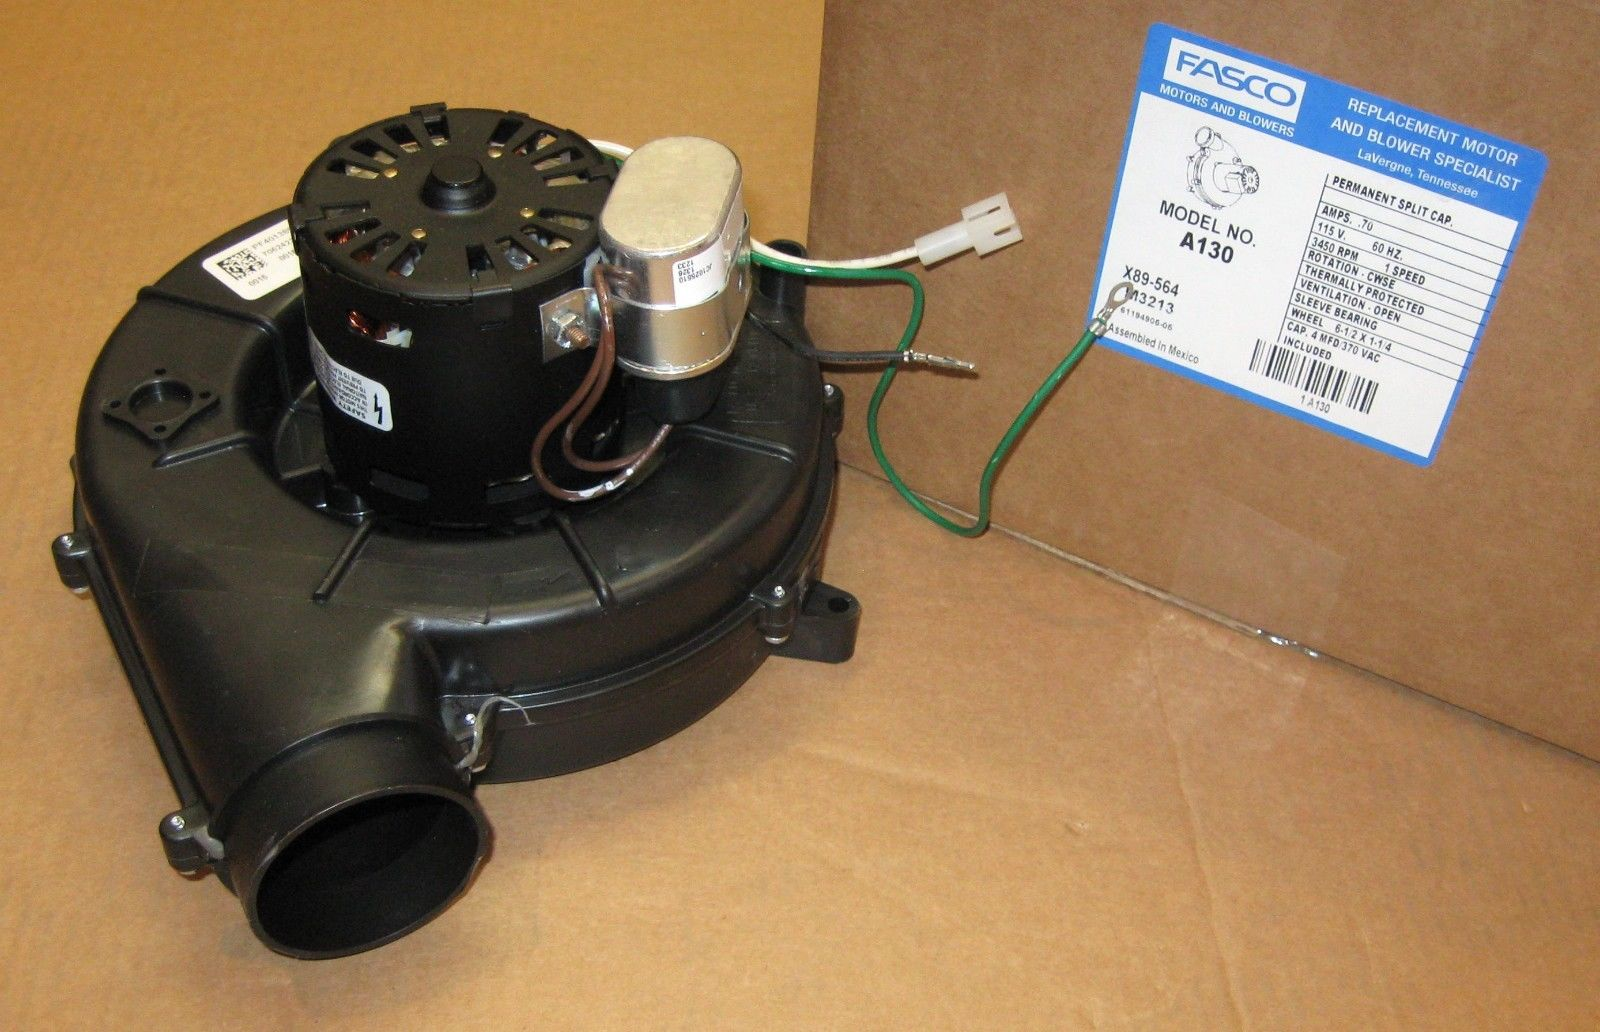 A130 Fasco Furnace Inducer Motor For D330757p035 7062 9064